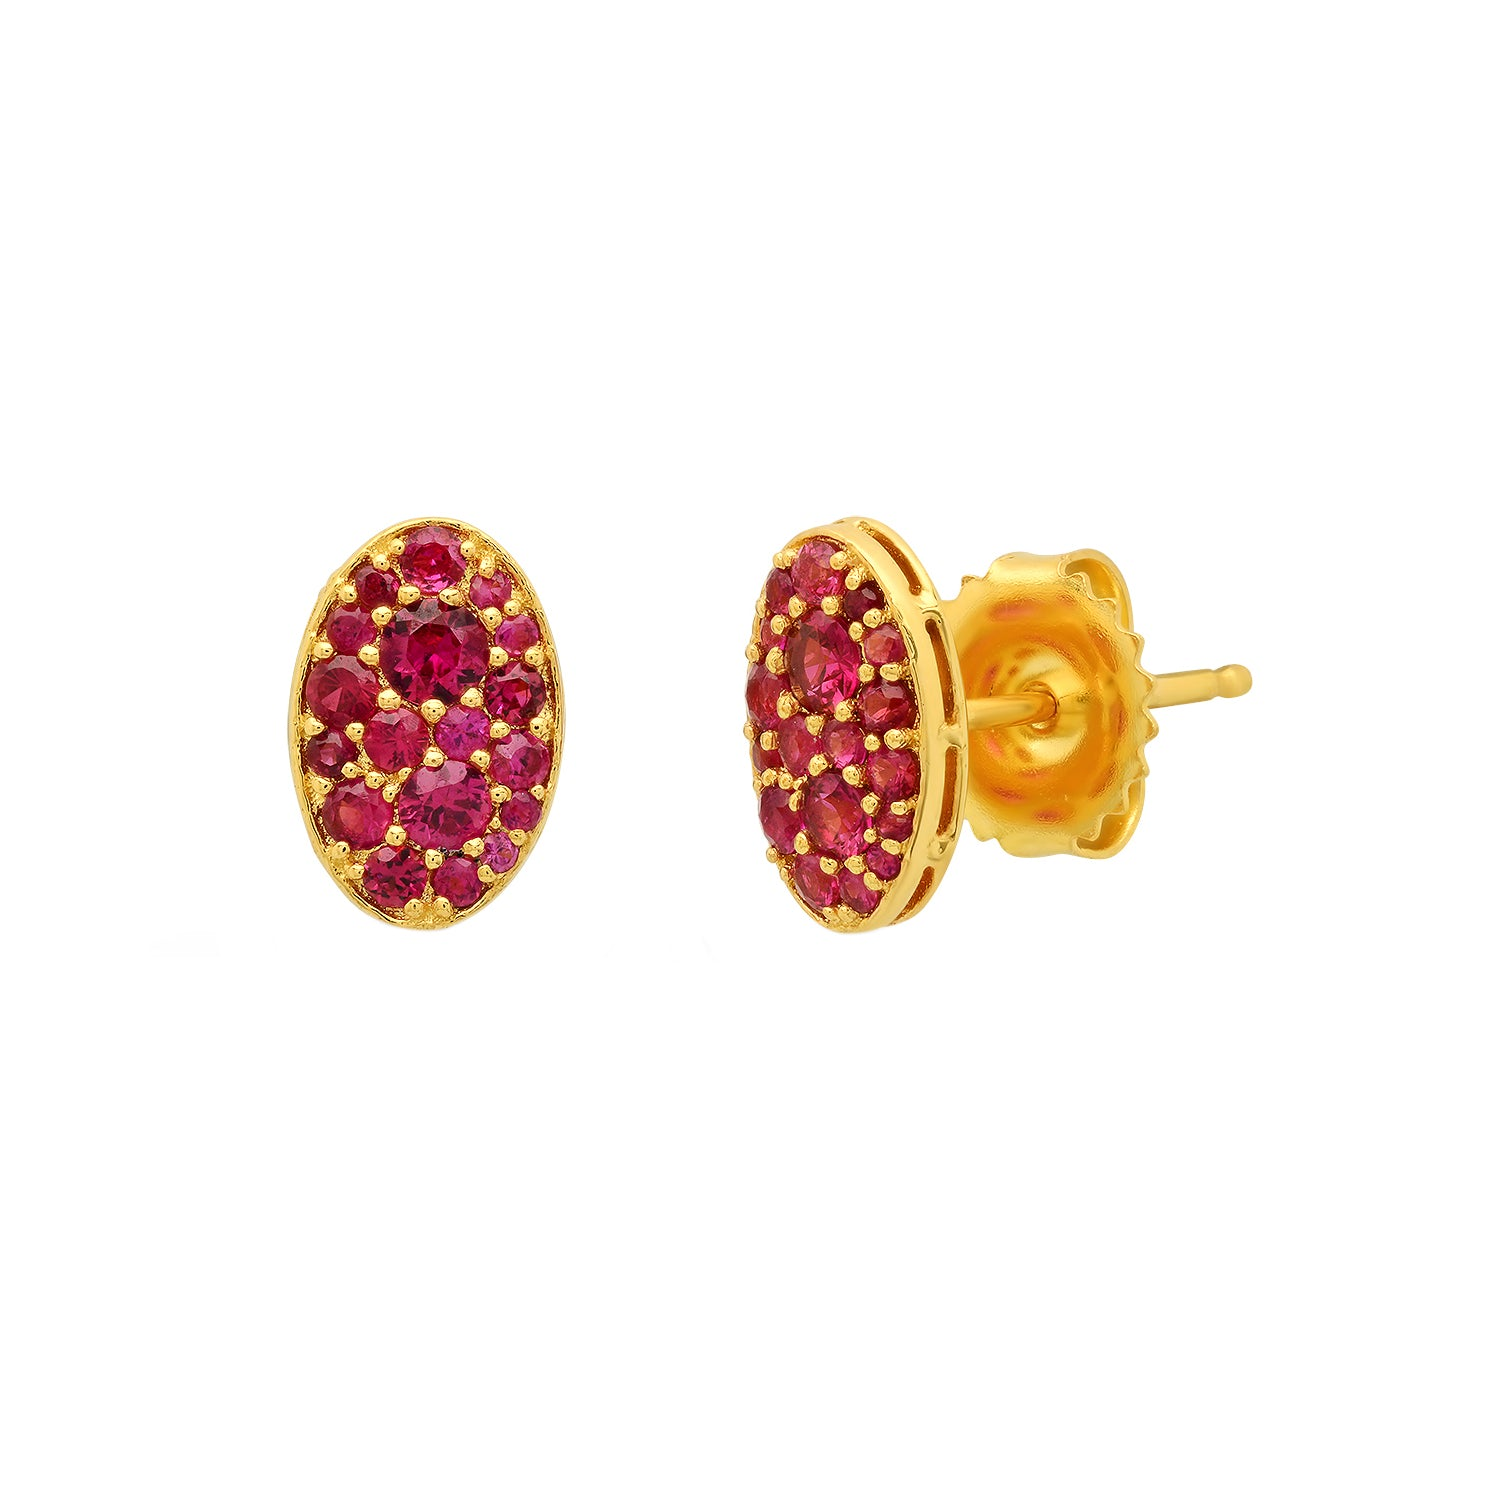 Ruby Oval Studs by Colette for Broken English Jewelry